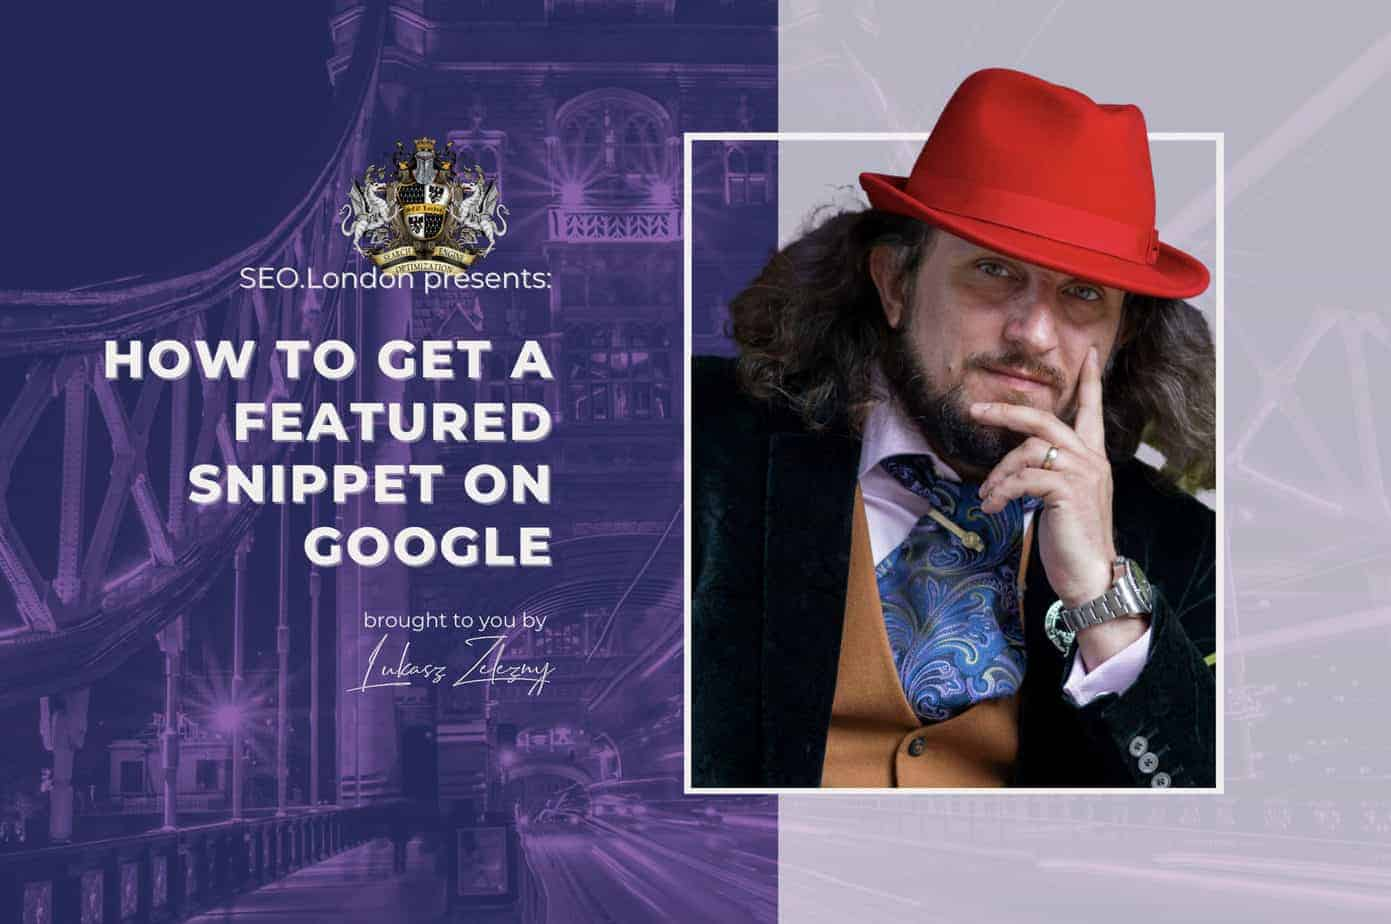 How to Get a Featured Snippet on Google